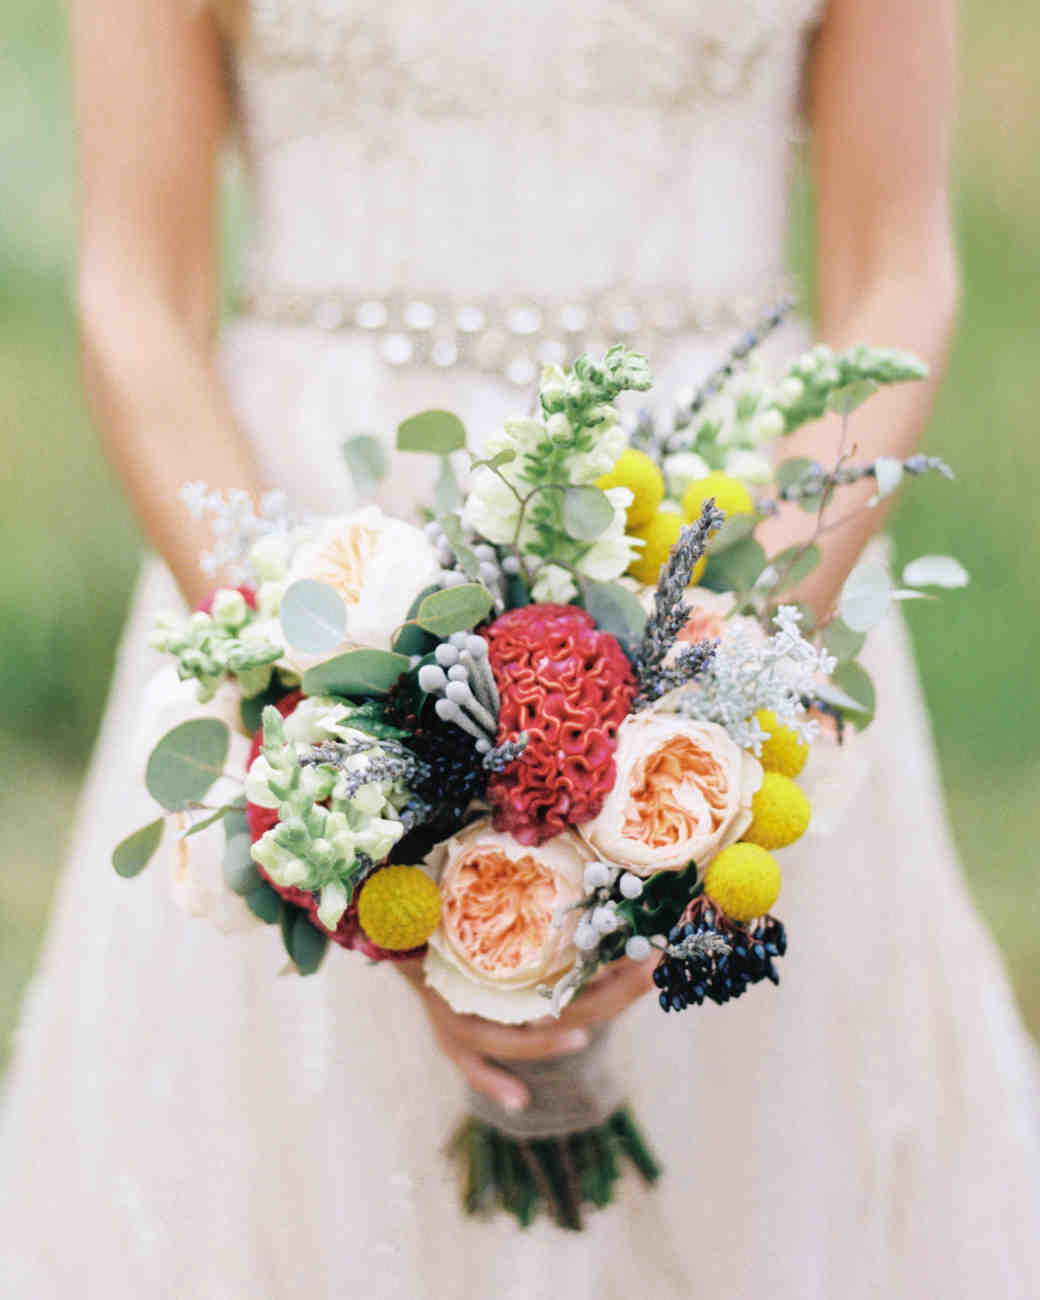 Summer Wedding Bouquets That Embrace the Season | Martha Stewart ...